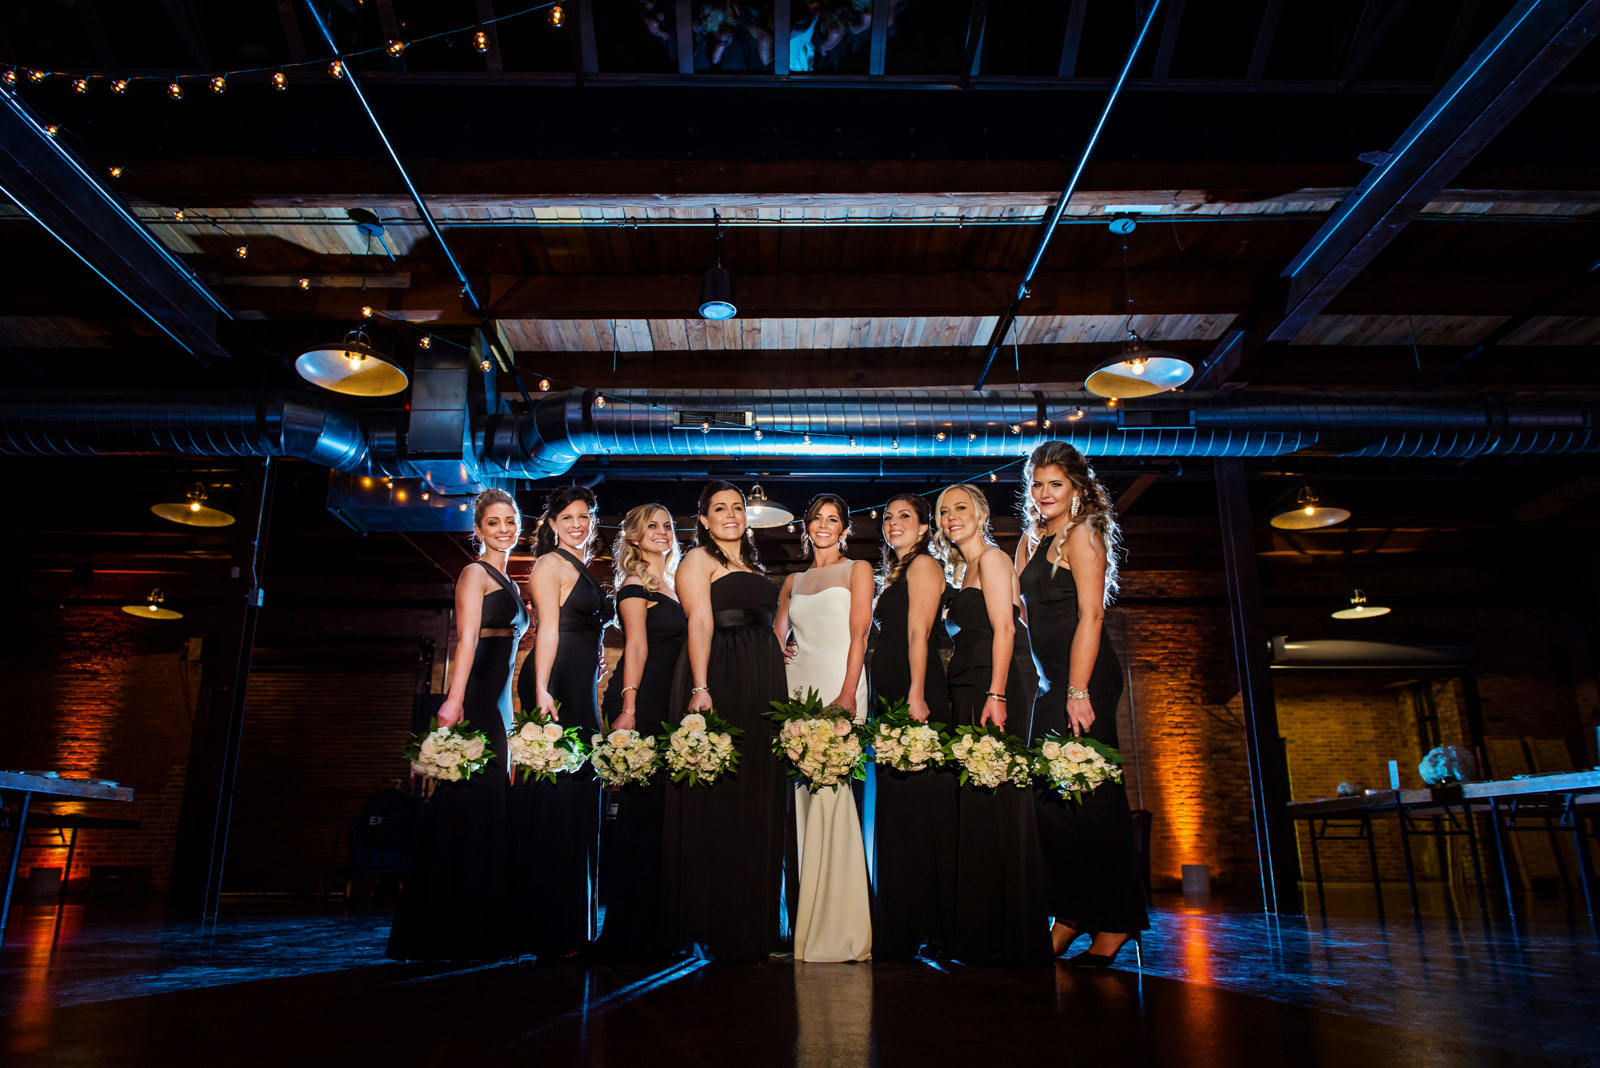 Bridesmaids in blue light holding wedding bouquets